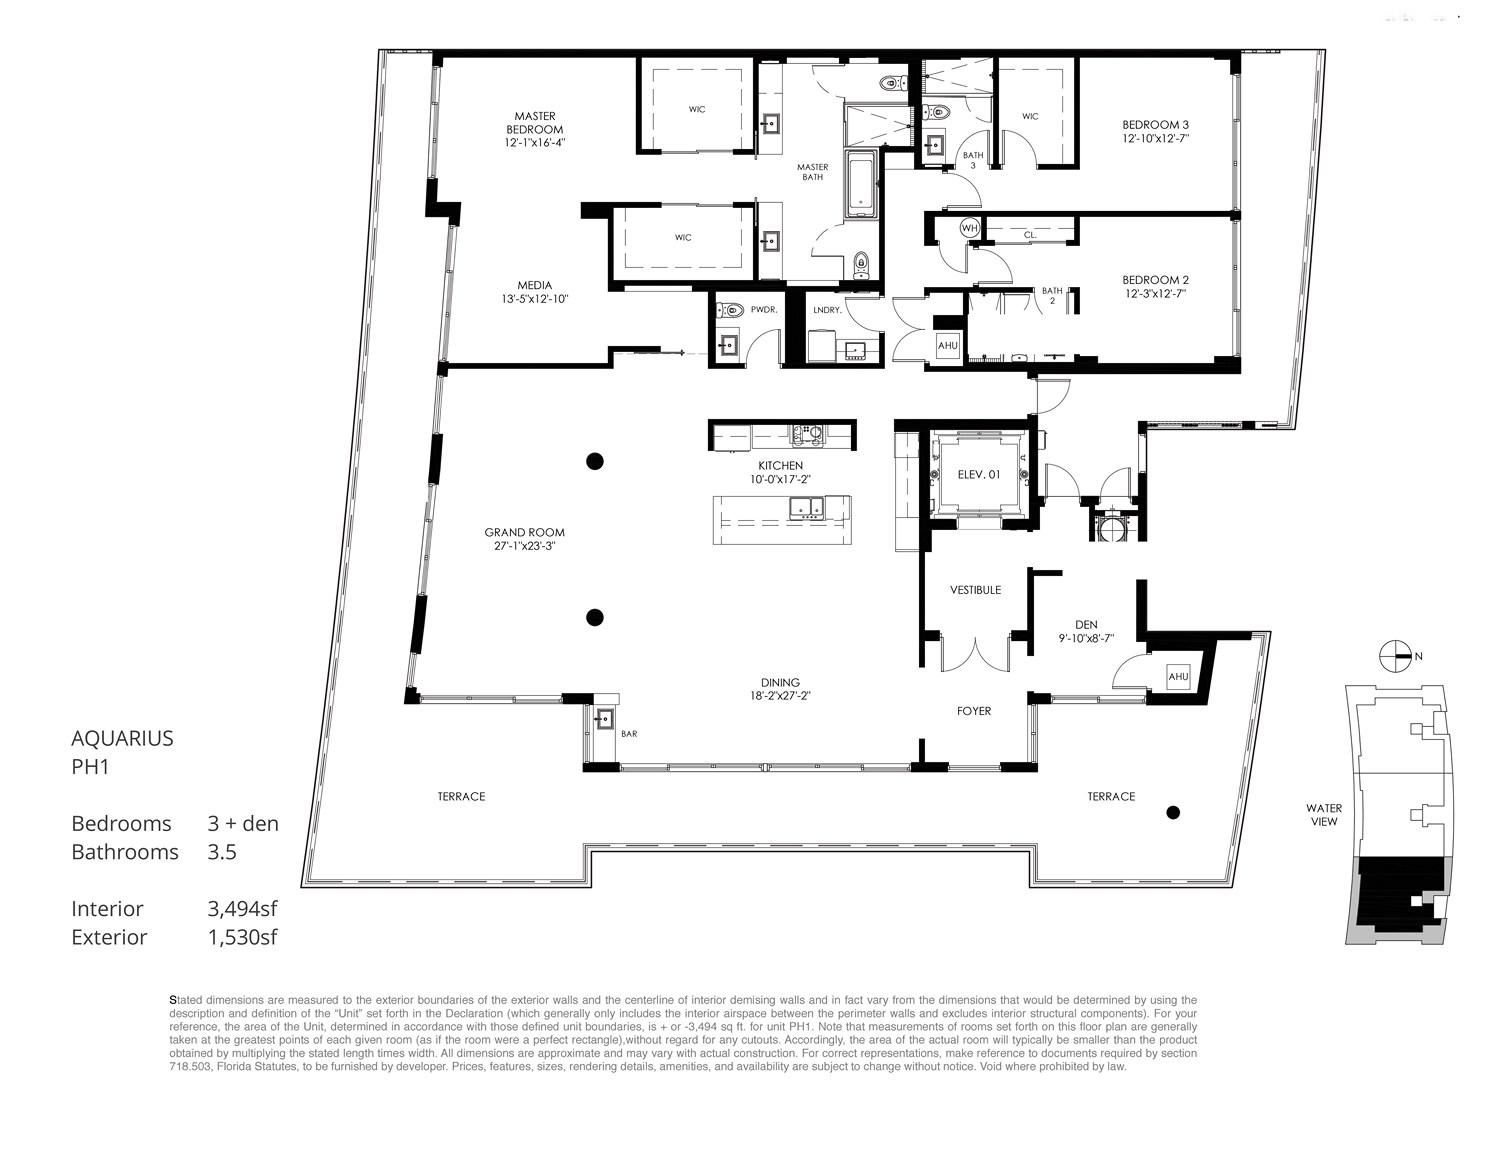 Aquarius 15 - Floorplan 7